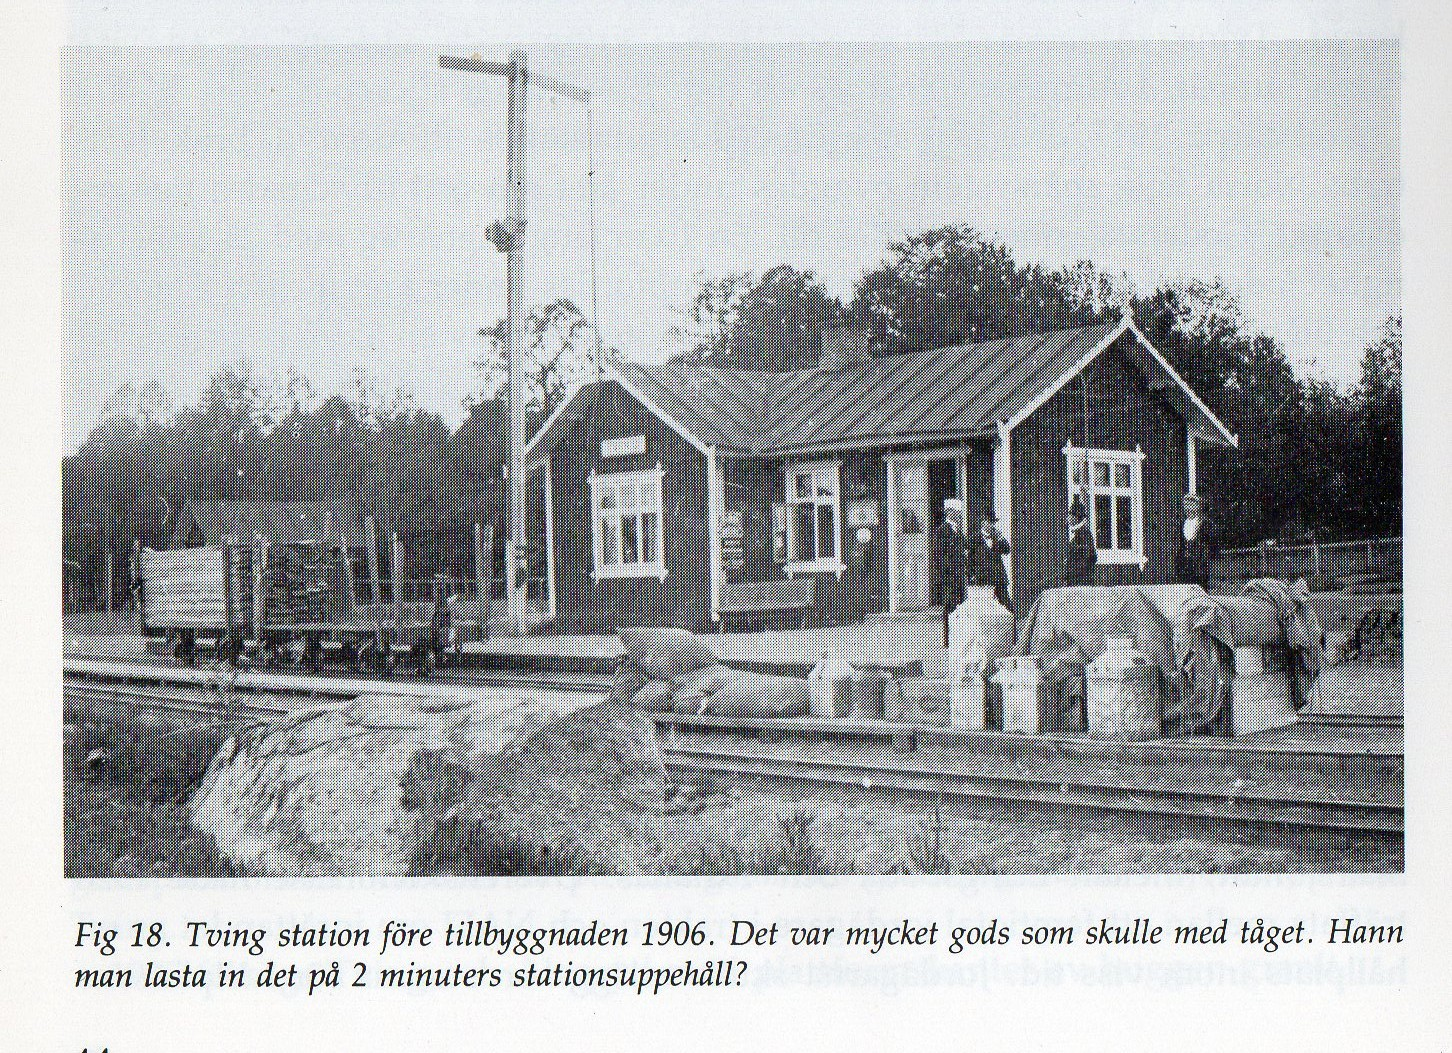 Tvings station 1906.